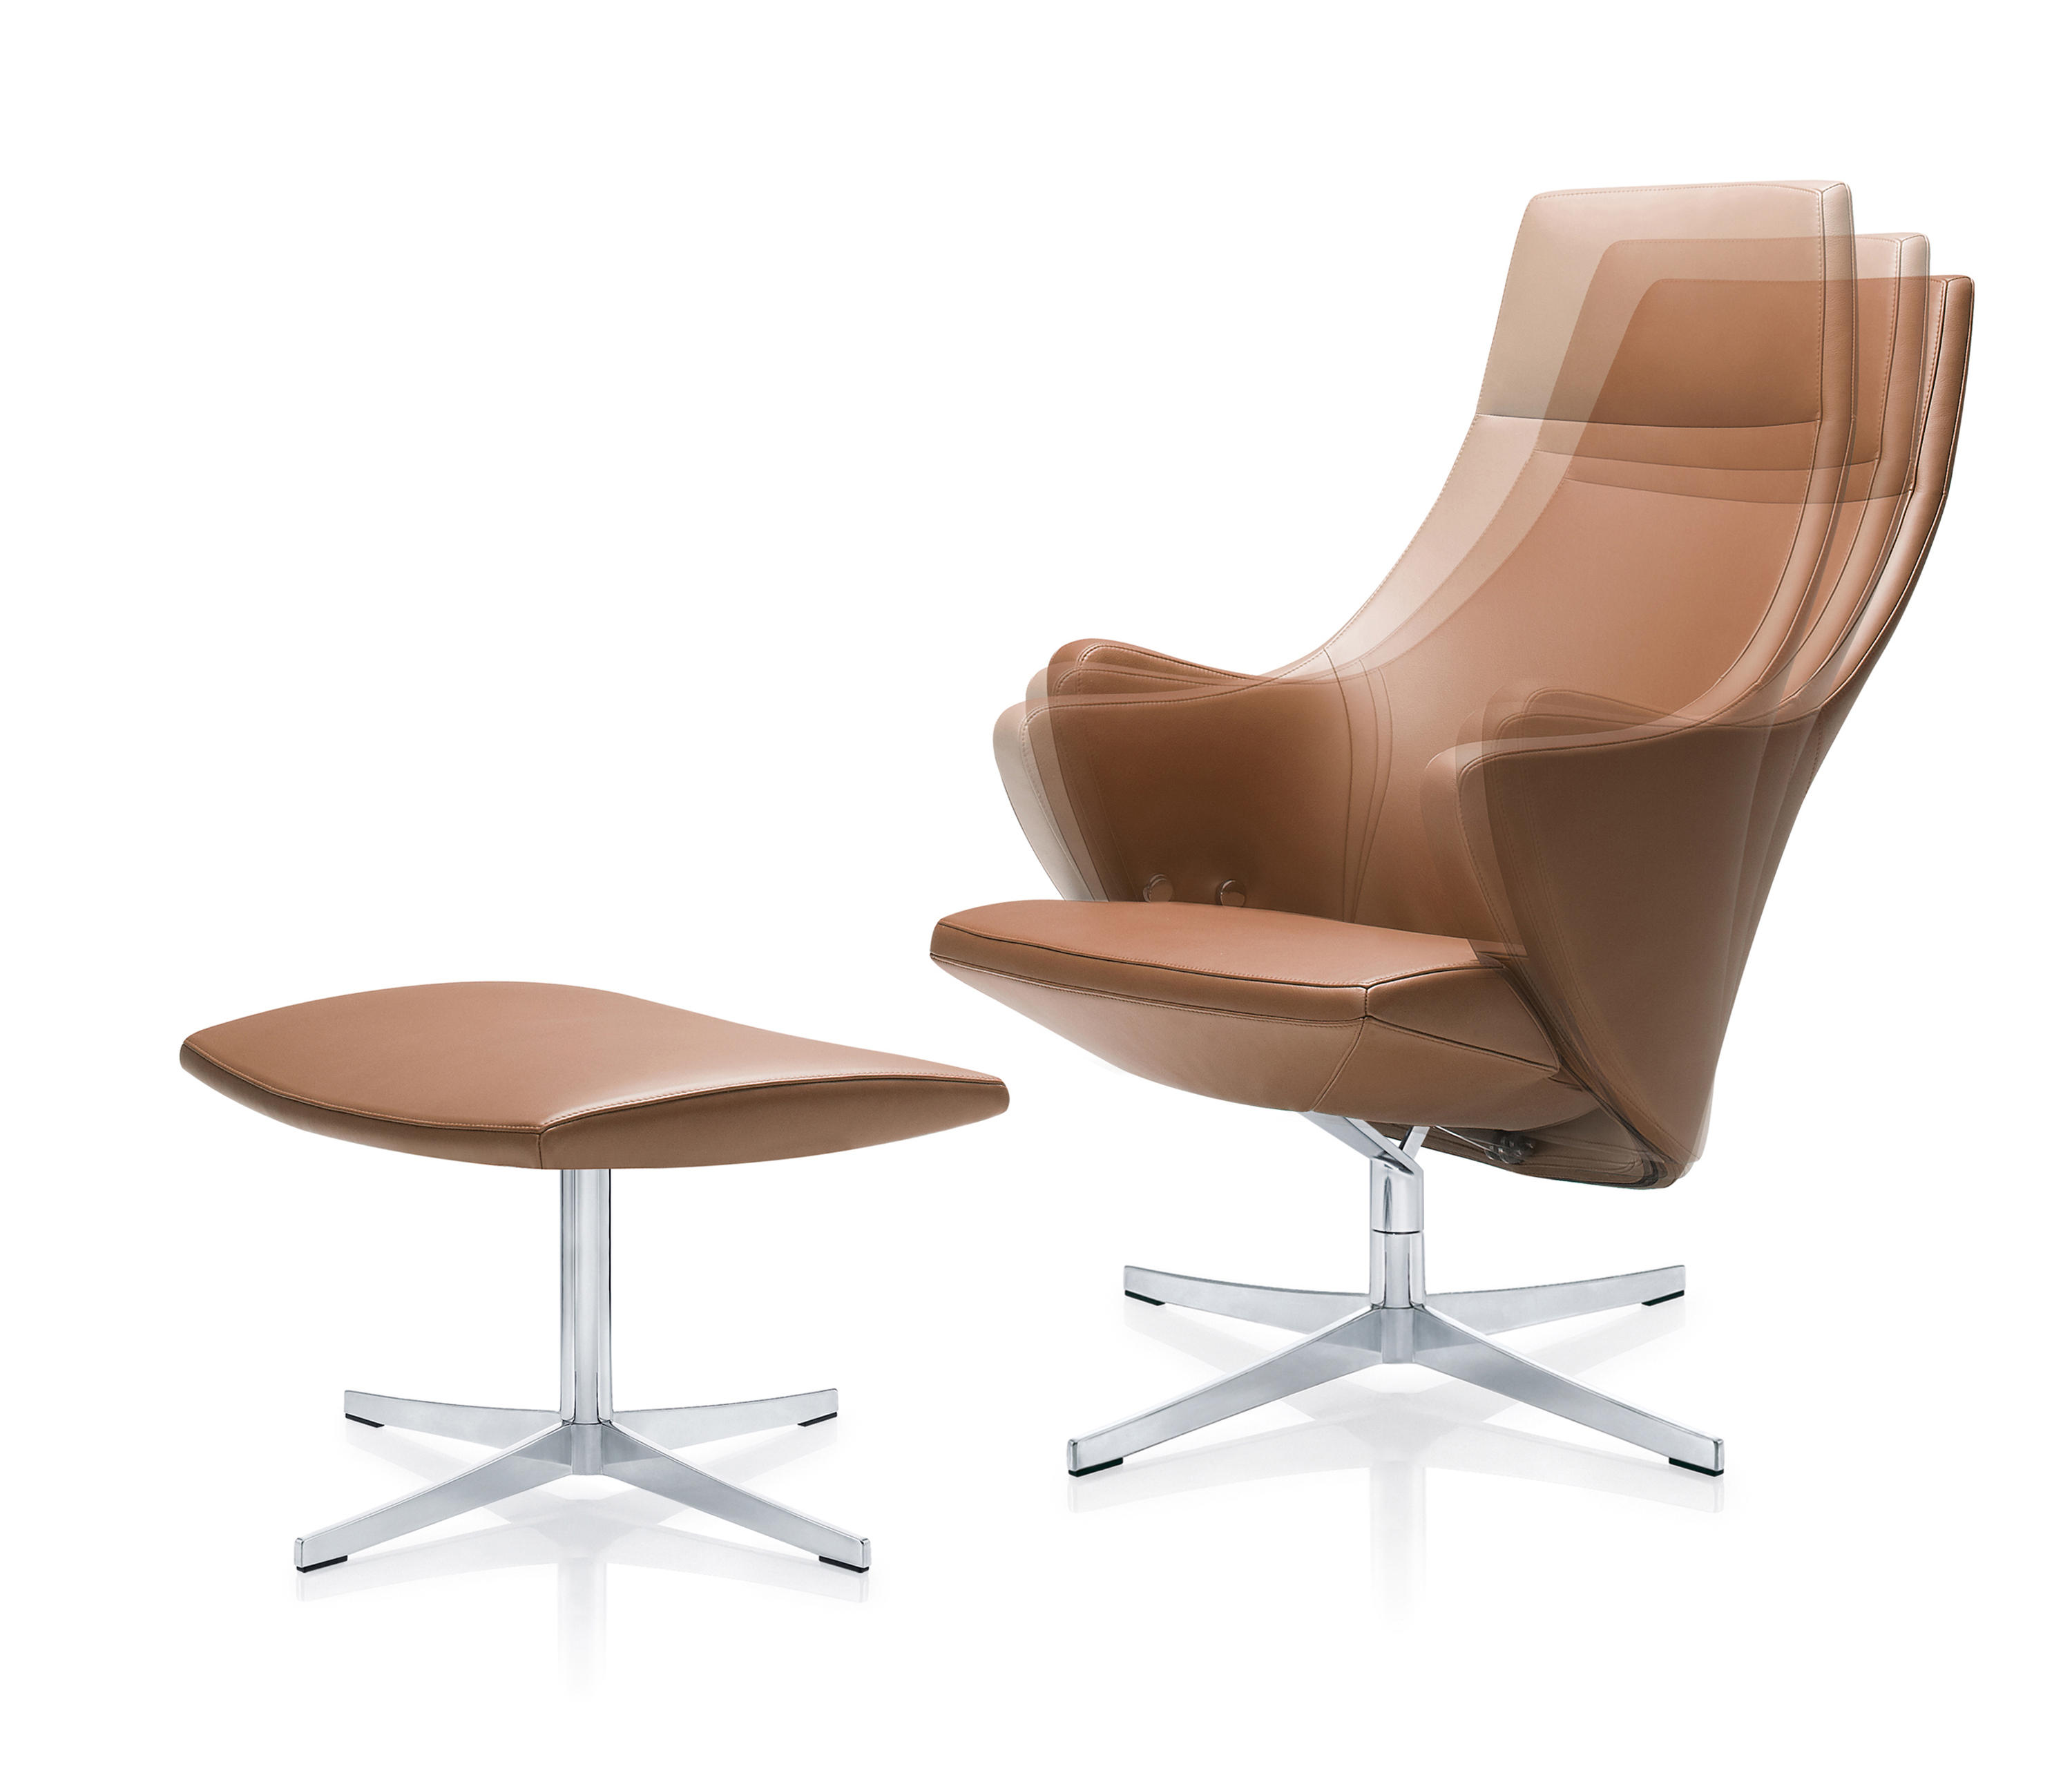 chair plus stool baby portable high nz 4 43 relax lounges and lounge chairs from züco